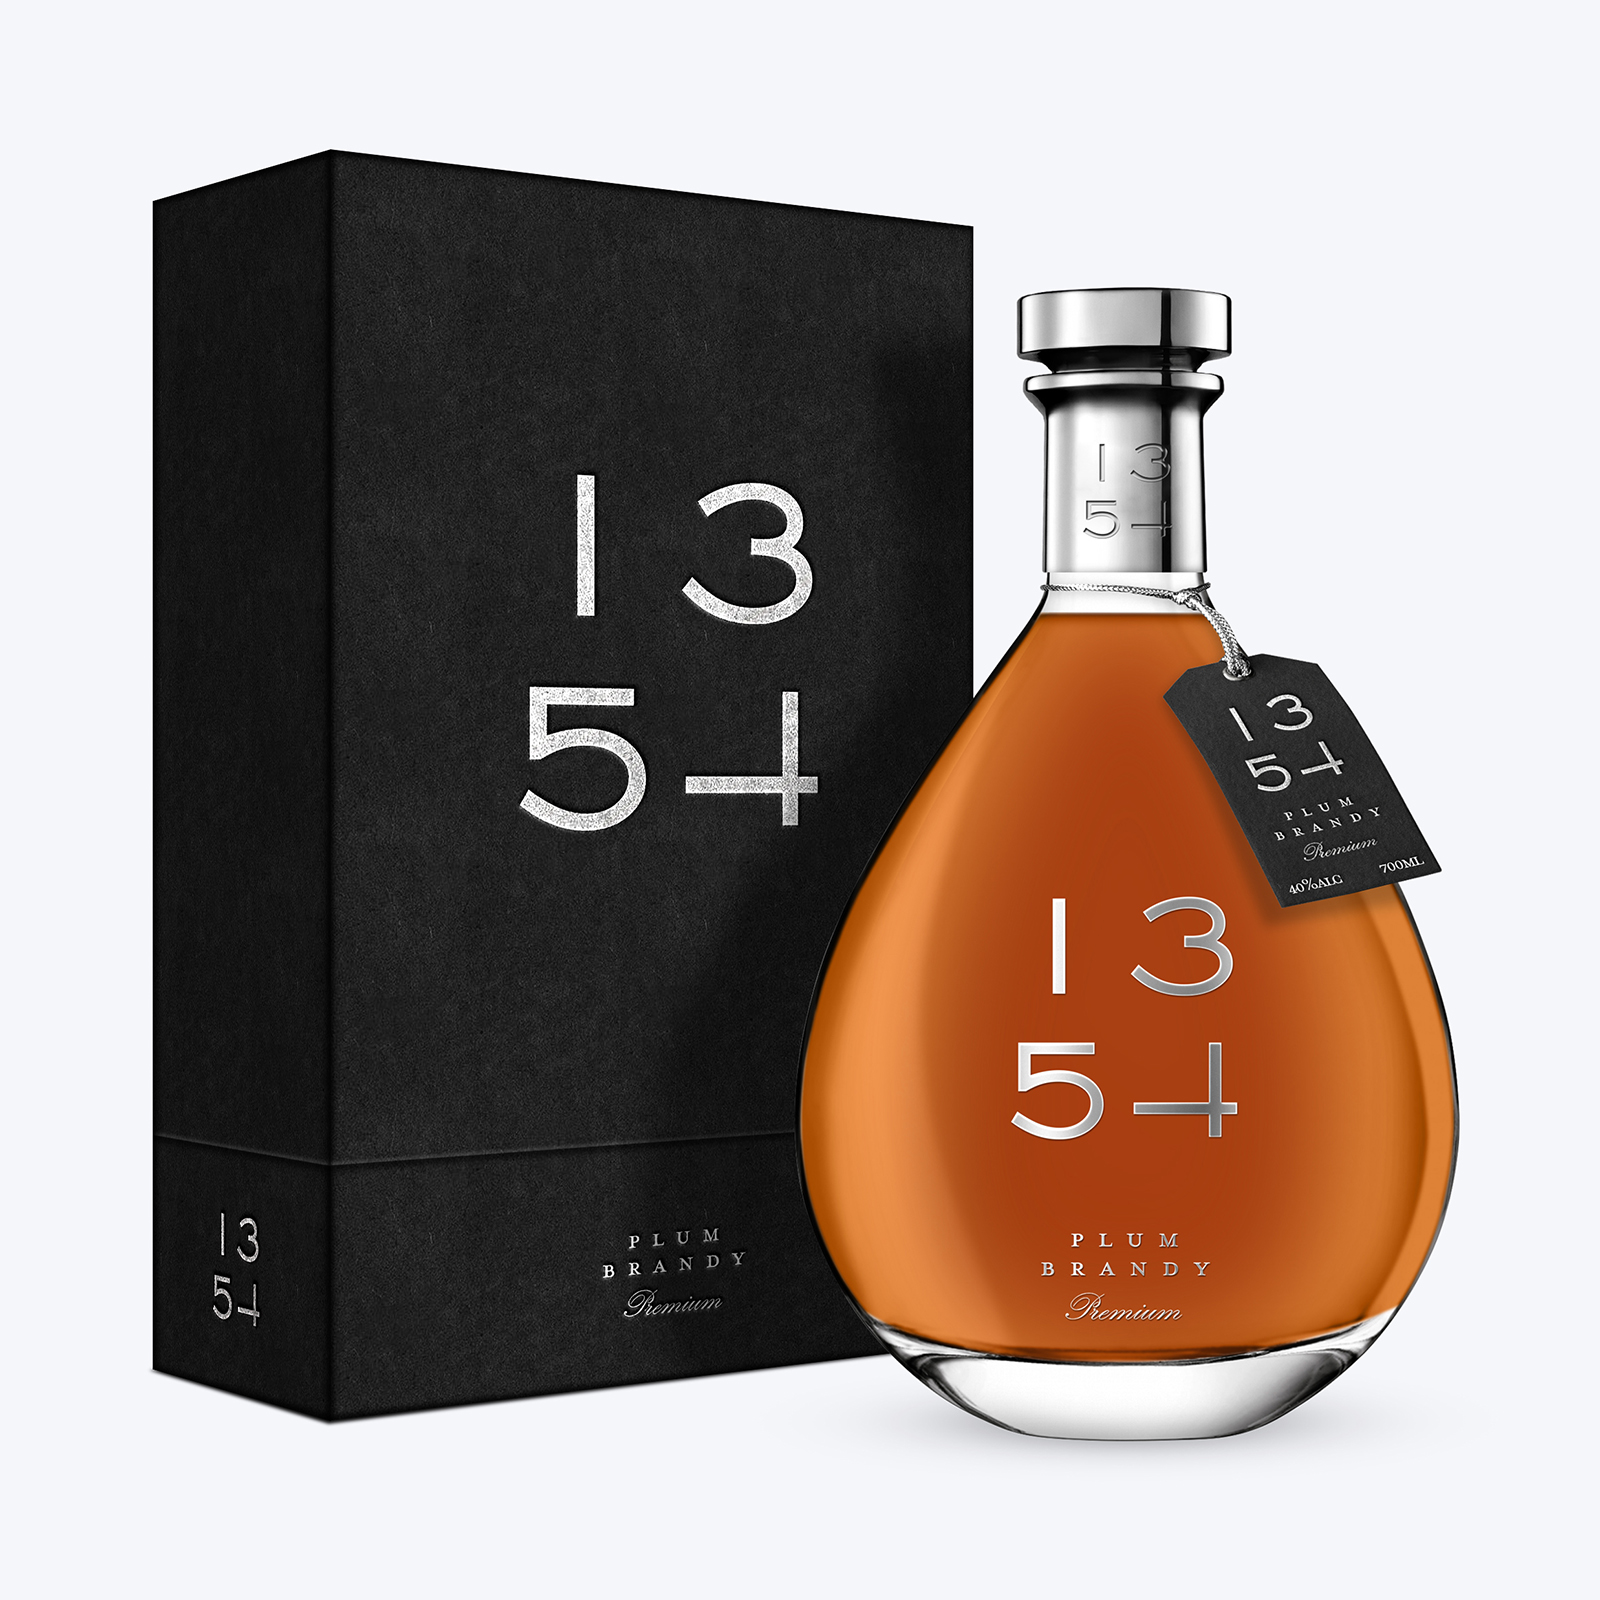 bobo88dsgn Create 1354 Plum Brandy Premium Packaging Design